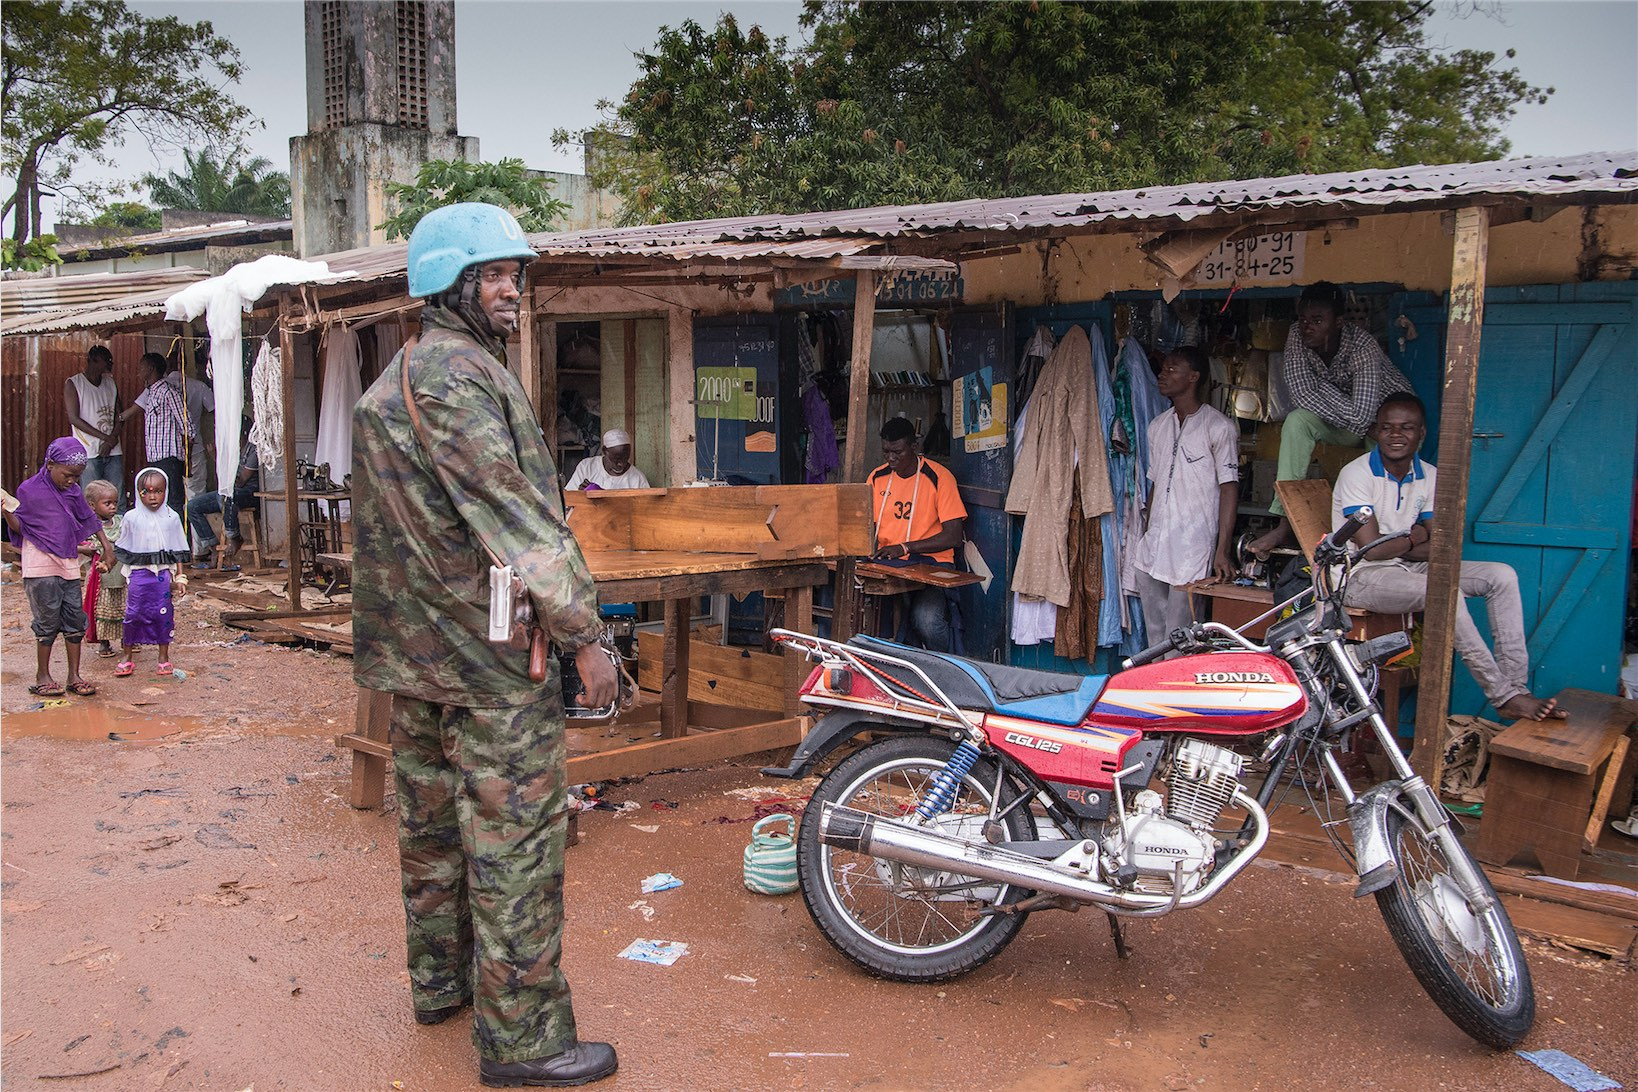 Military and police peacekeepers serving with the UN Multidimensional Integrated Stabilization Mission in the Central African Republic (MINUSCA) patrol the Muslim enclave of PK5 in Bangui. Credit: UN Photo/Eskinder Debebe 22 October 2017 Bangui, Central African Republic License: CC BY-NC-ND 2.0